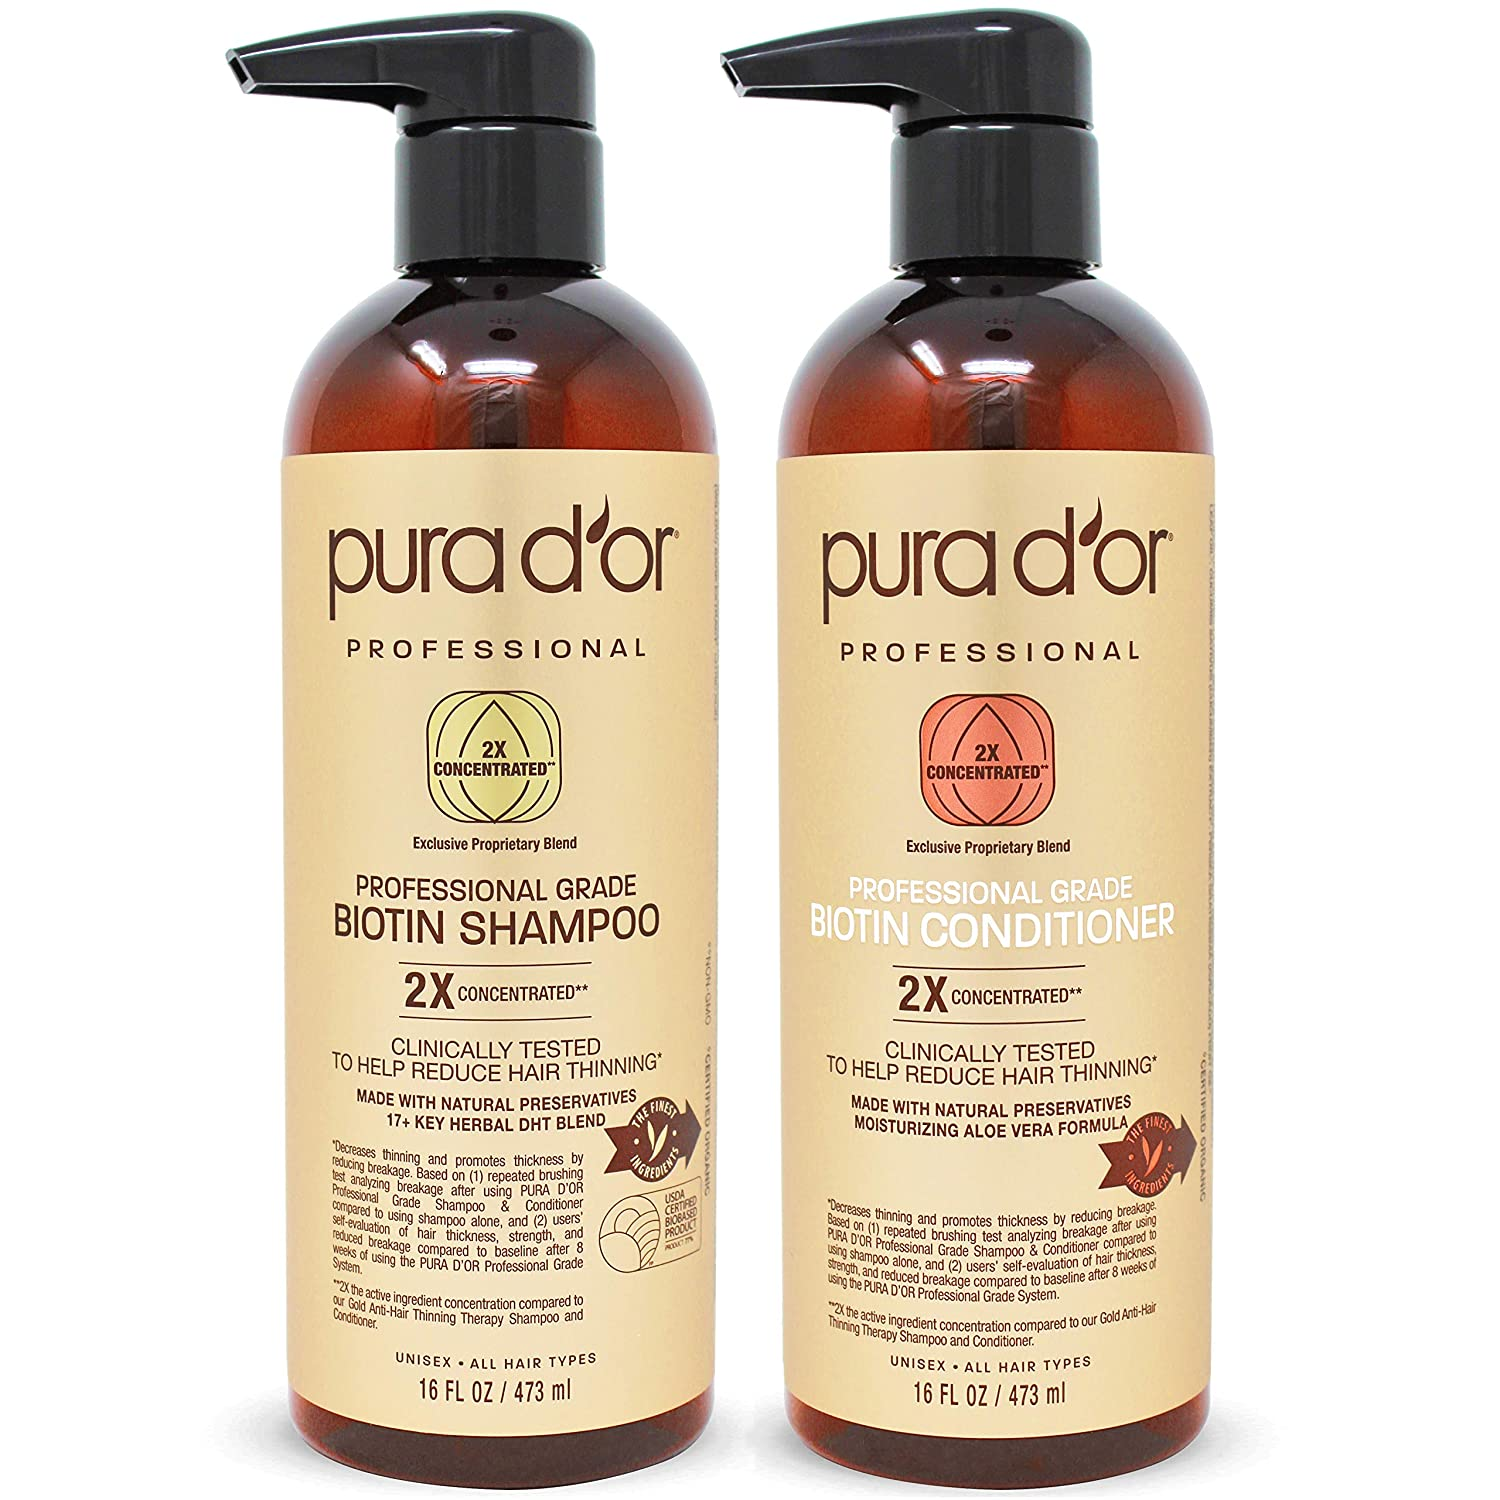 PURA DOR Professional Grade AntiHair Thinning 2X Concentrated Actives Biotin Shampoo  Conditioner